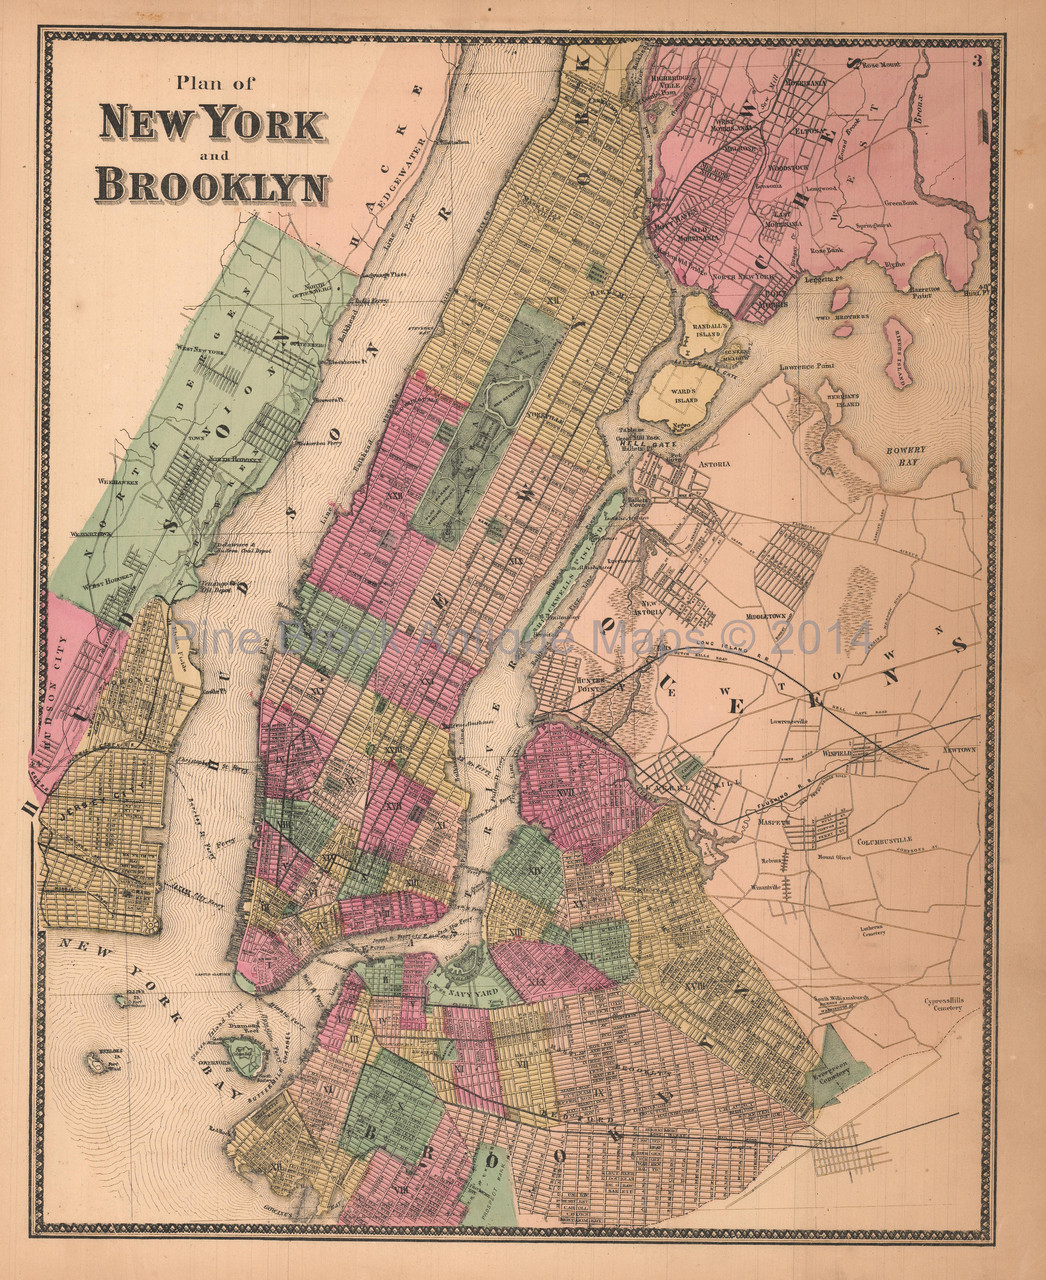 brooklyn map new york New York City Brooklyn Antique Map Beers 1867 Pine Brook Antique brooklyn map new york